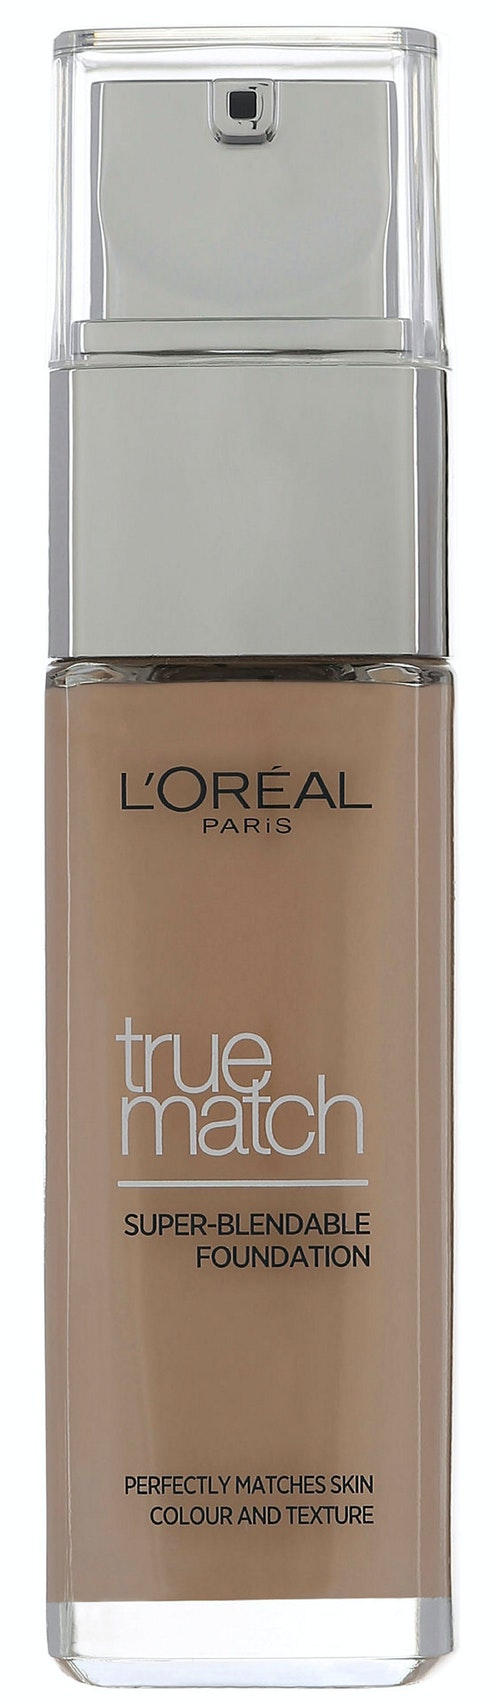 L'Oreal True Match Vanilla Rose 2R/2C Foundation 1 stk